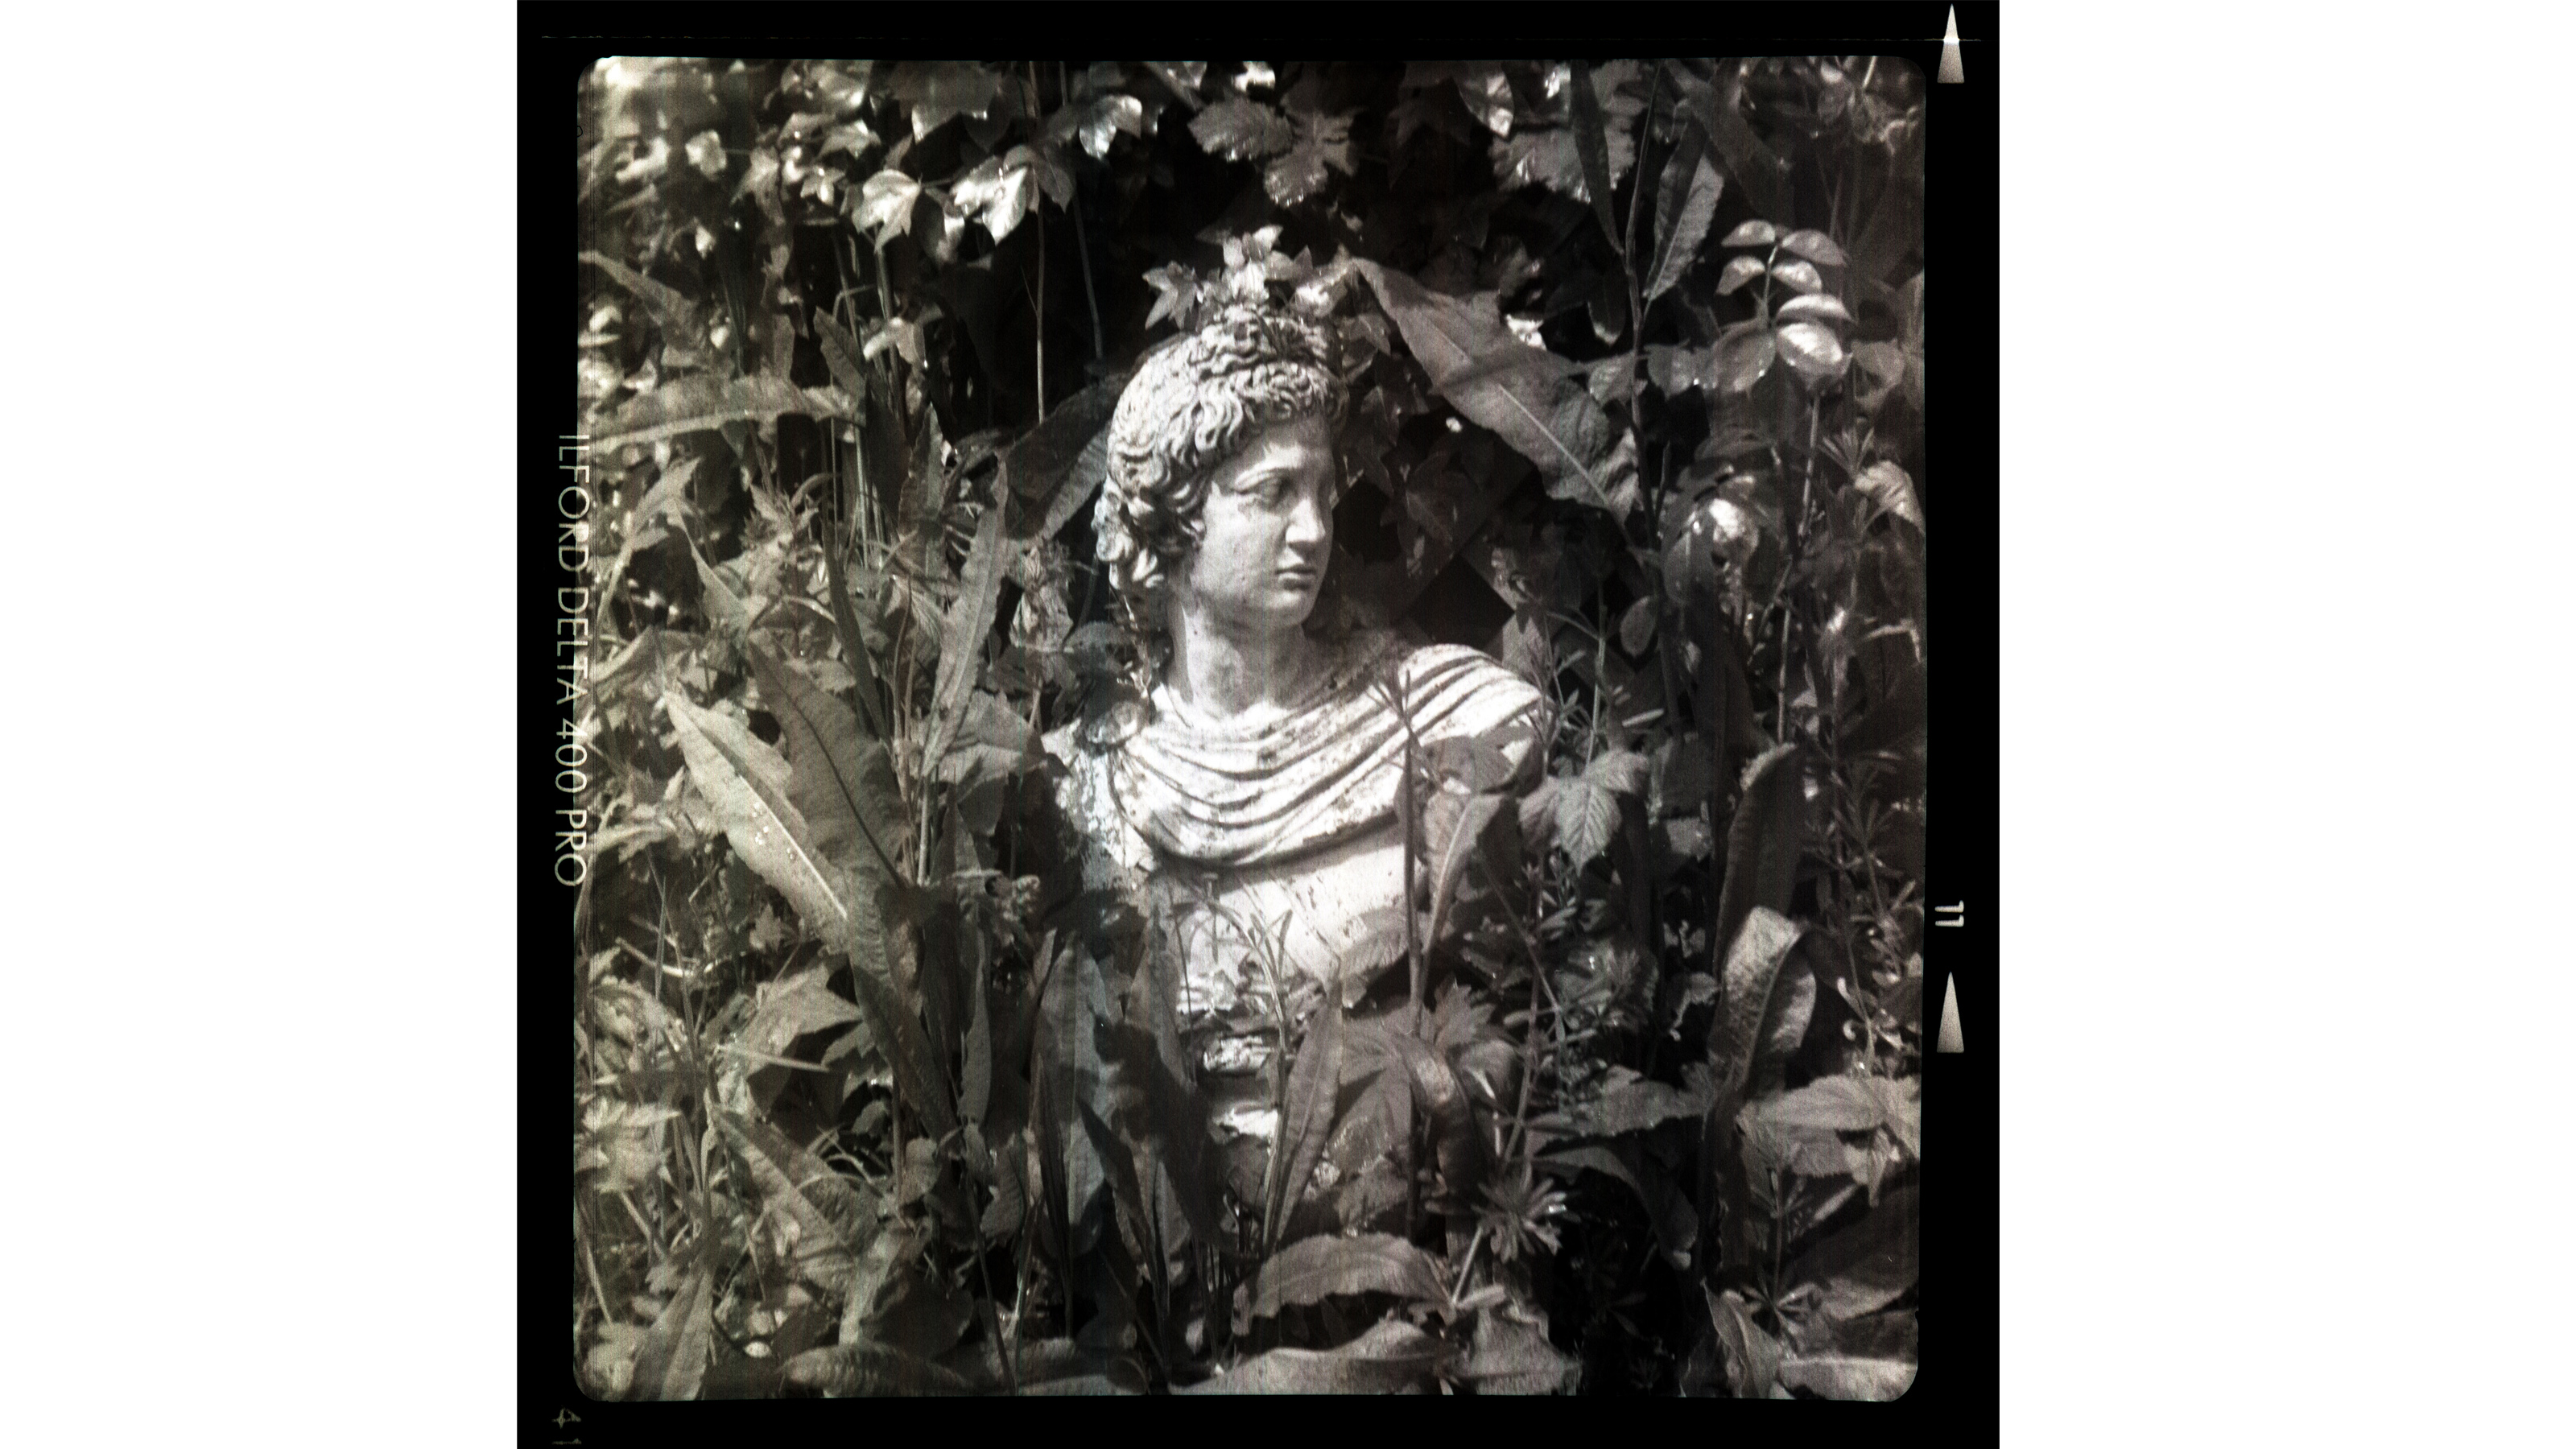 Photo of a statue surrounded by leaves taken on the Nemrod Siluro camera